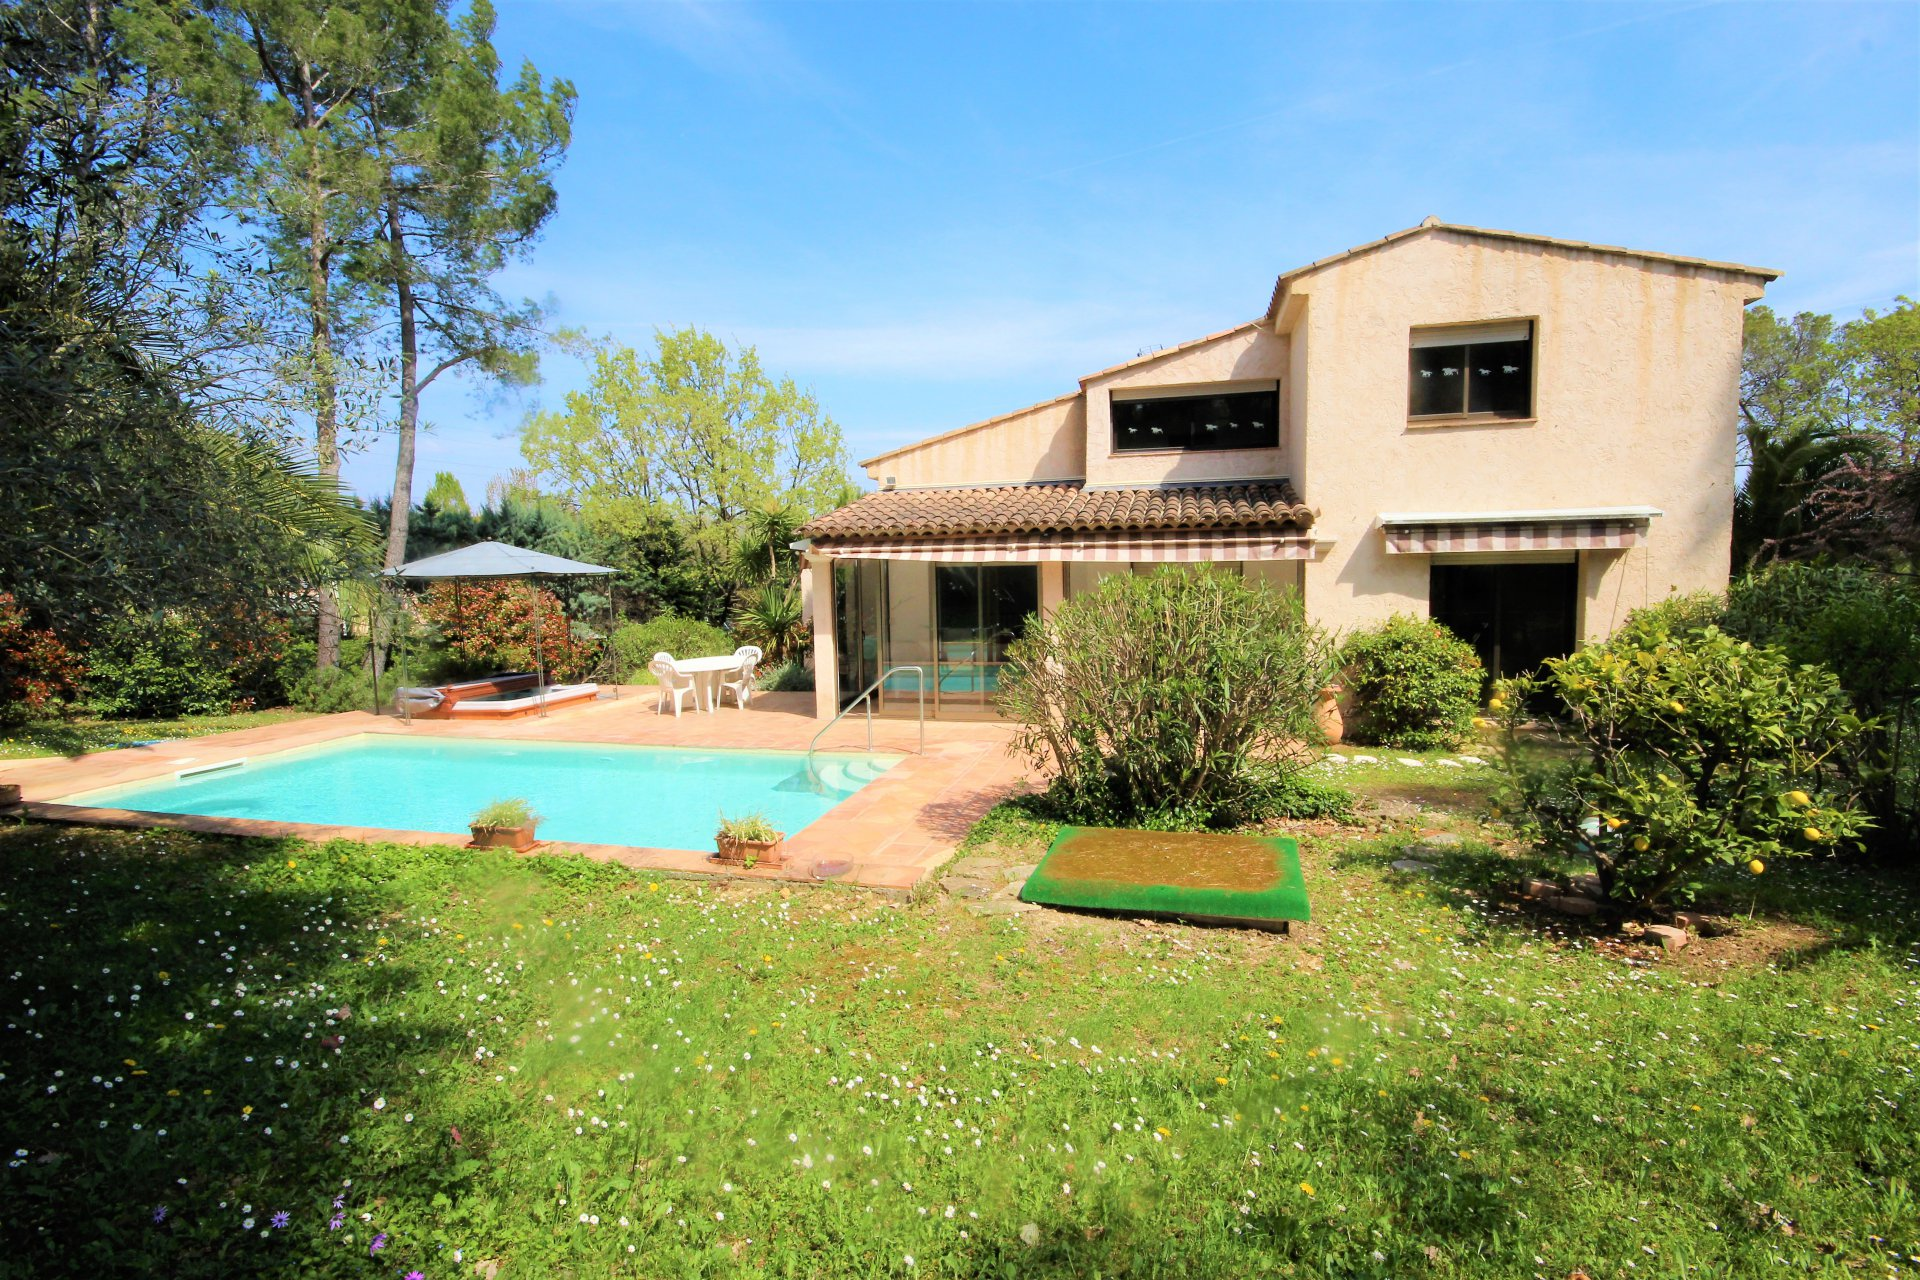 MOUGINS SALE VILLA 6 ROOMS WITH SWIMMING POOL IN ABSOLUTE CALM